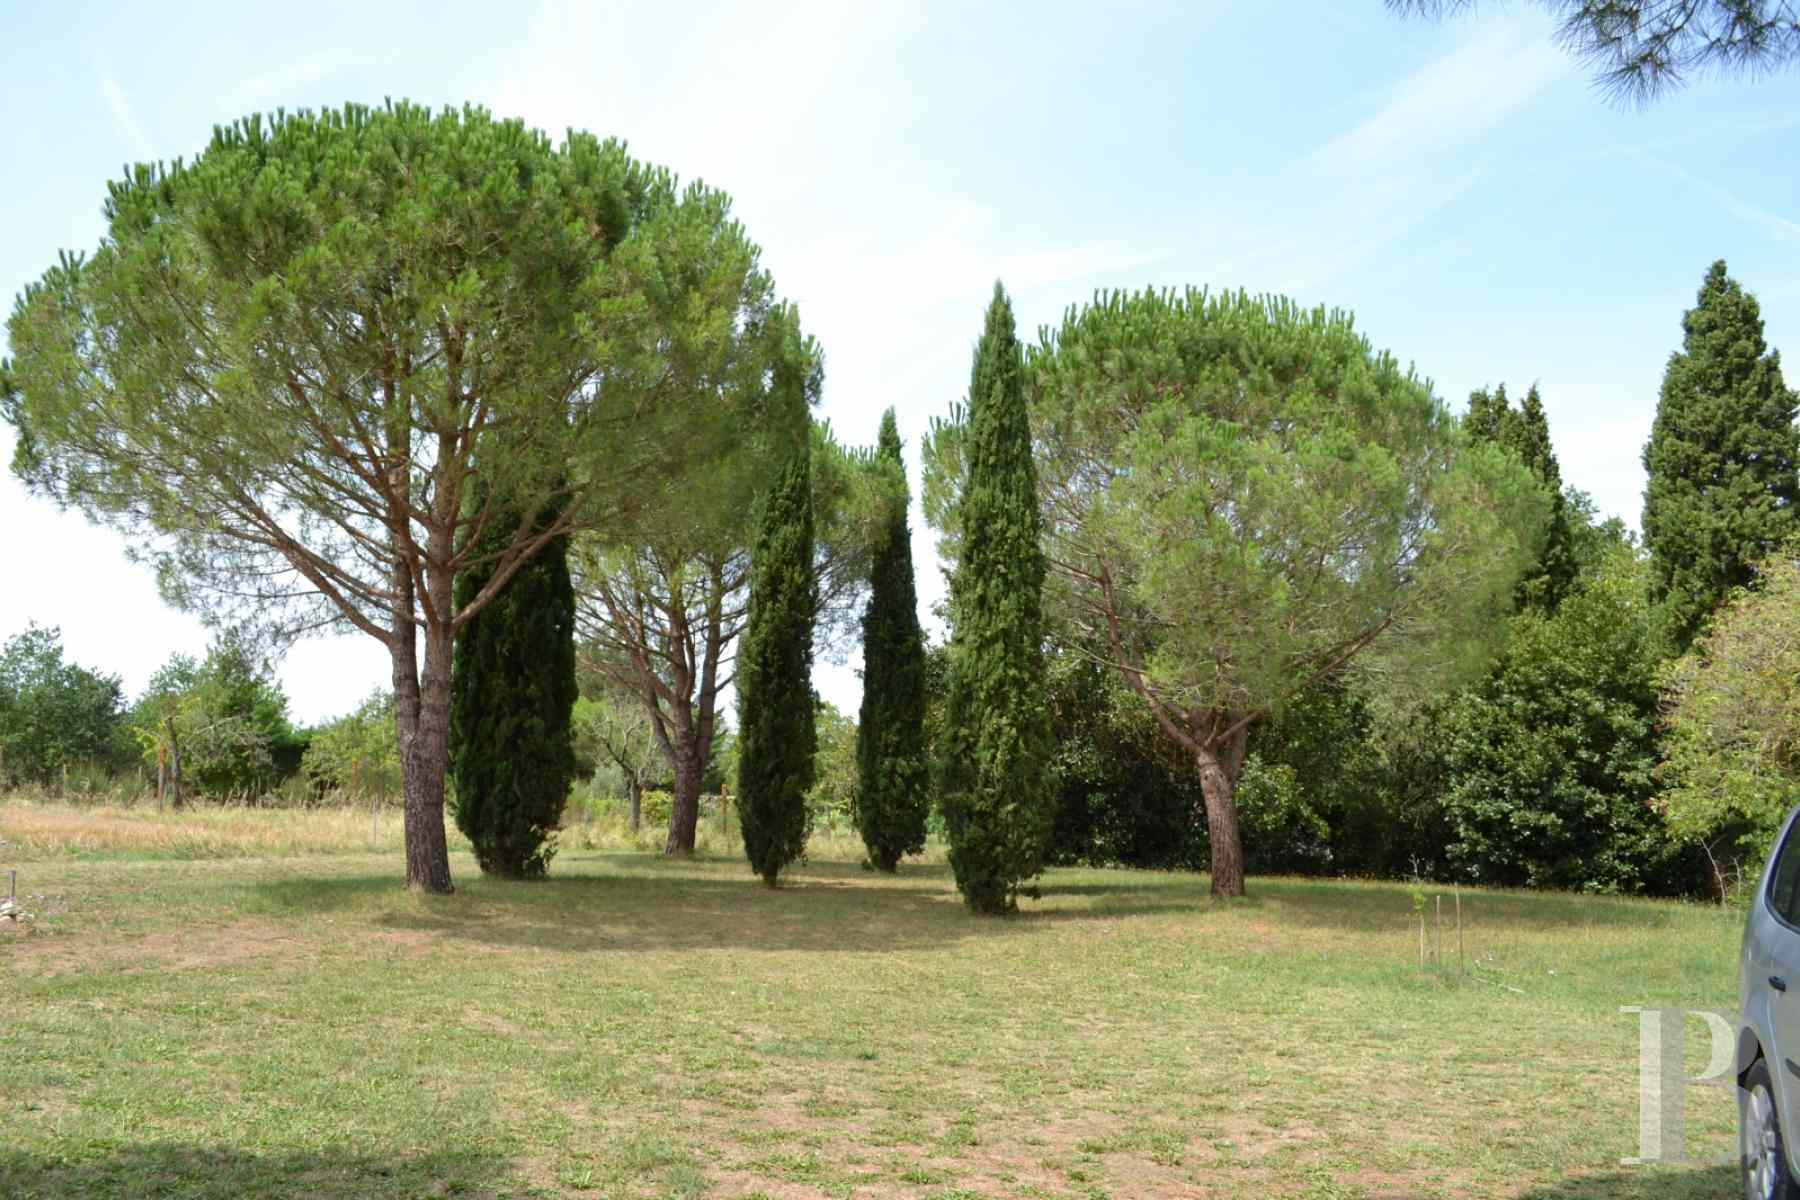 property for sale France aquitaine property 18th - 26 zoom